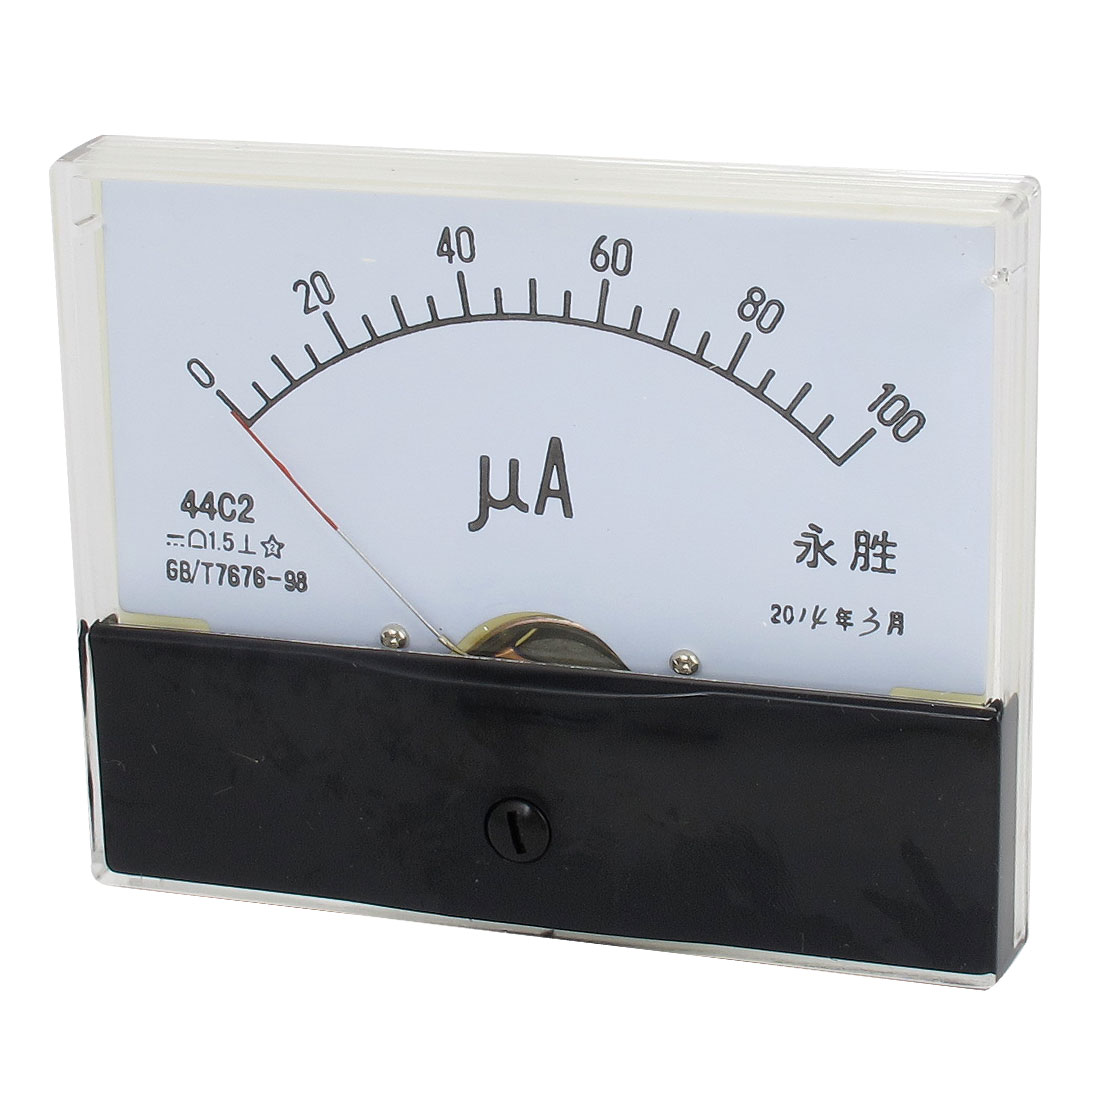 44C2 DC 0-100uA Class 1.5 Accuracy Clear Rectangle Panel Mounted Analog Ammeter Ampere Meter